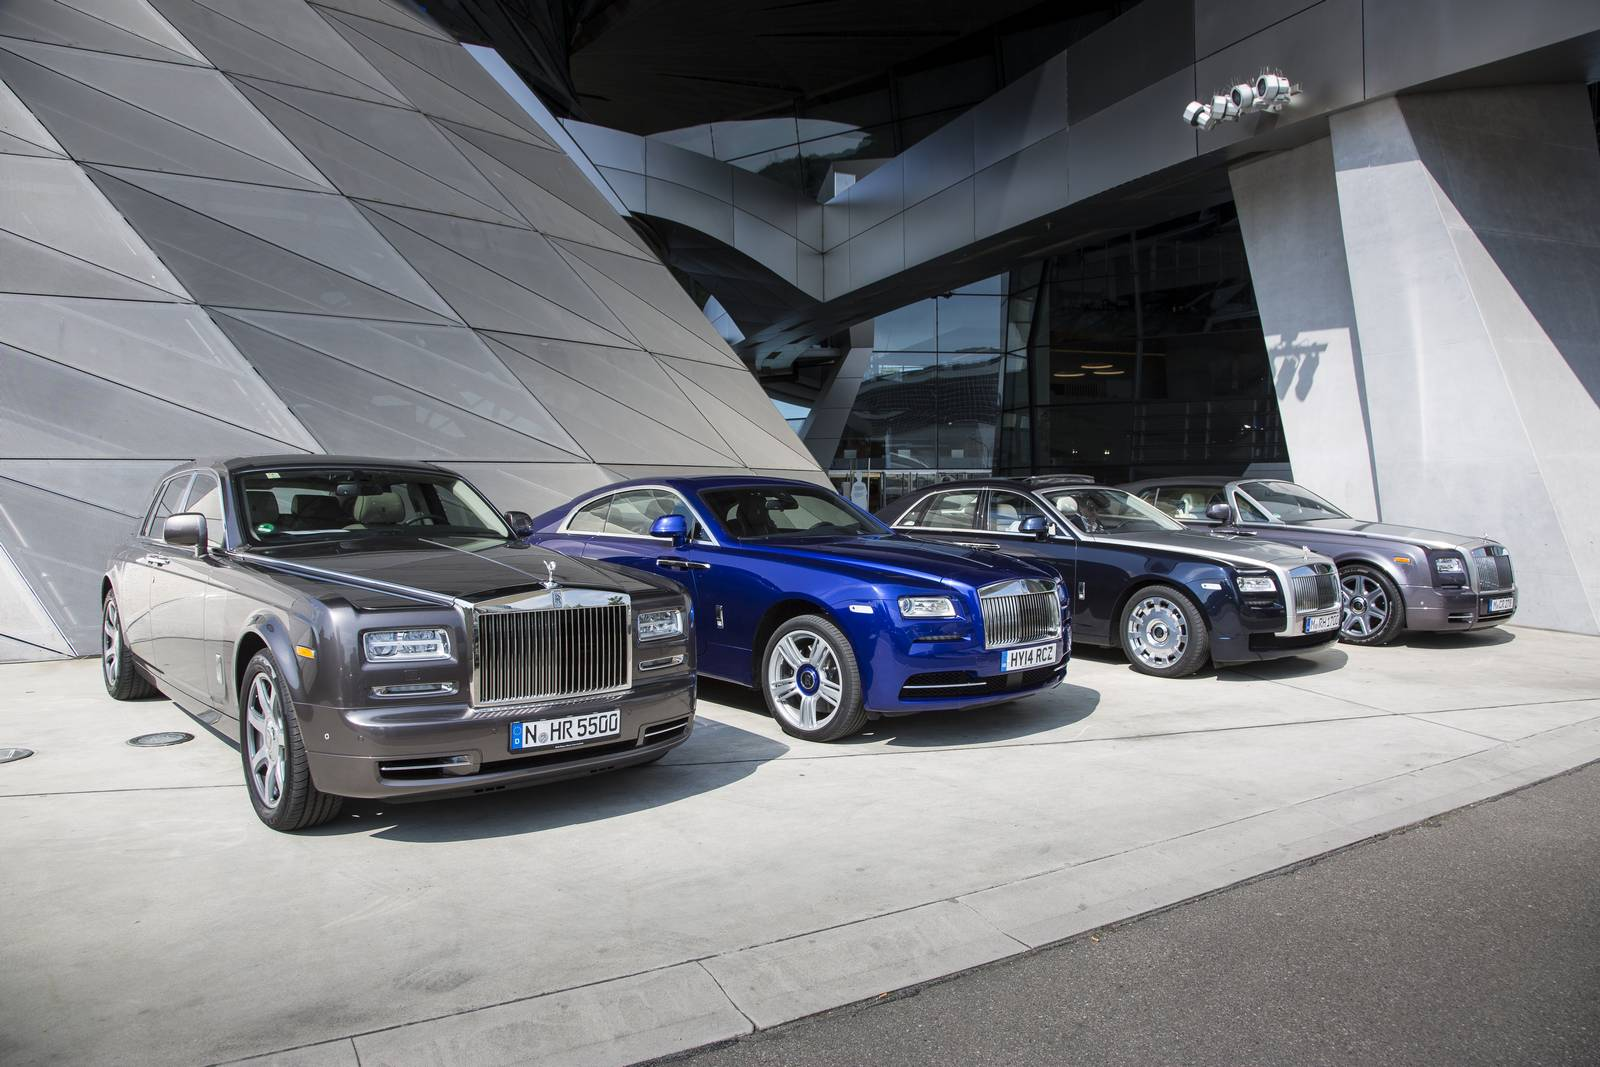 special report: rolls-royce wraith, ghost and phantom comparison